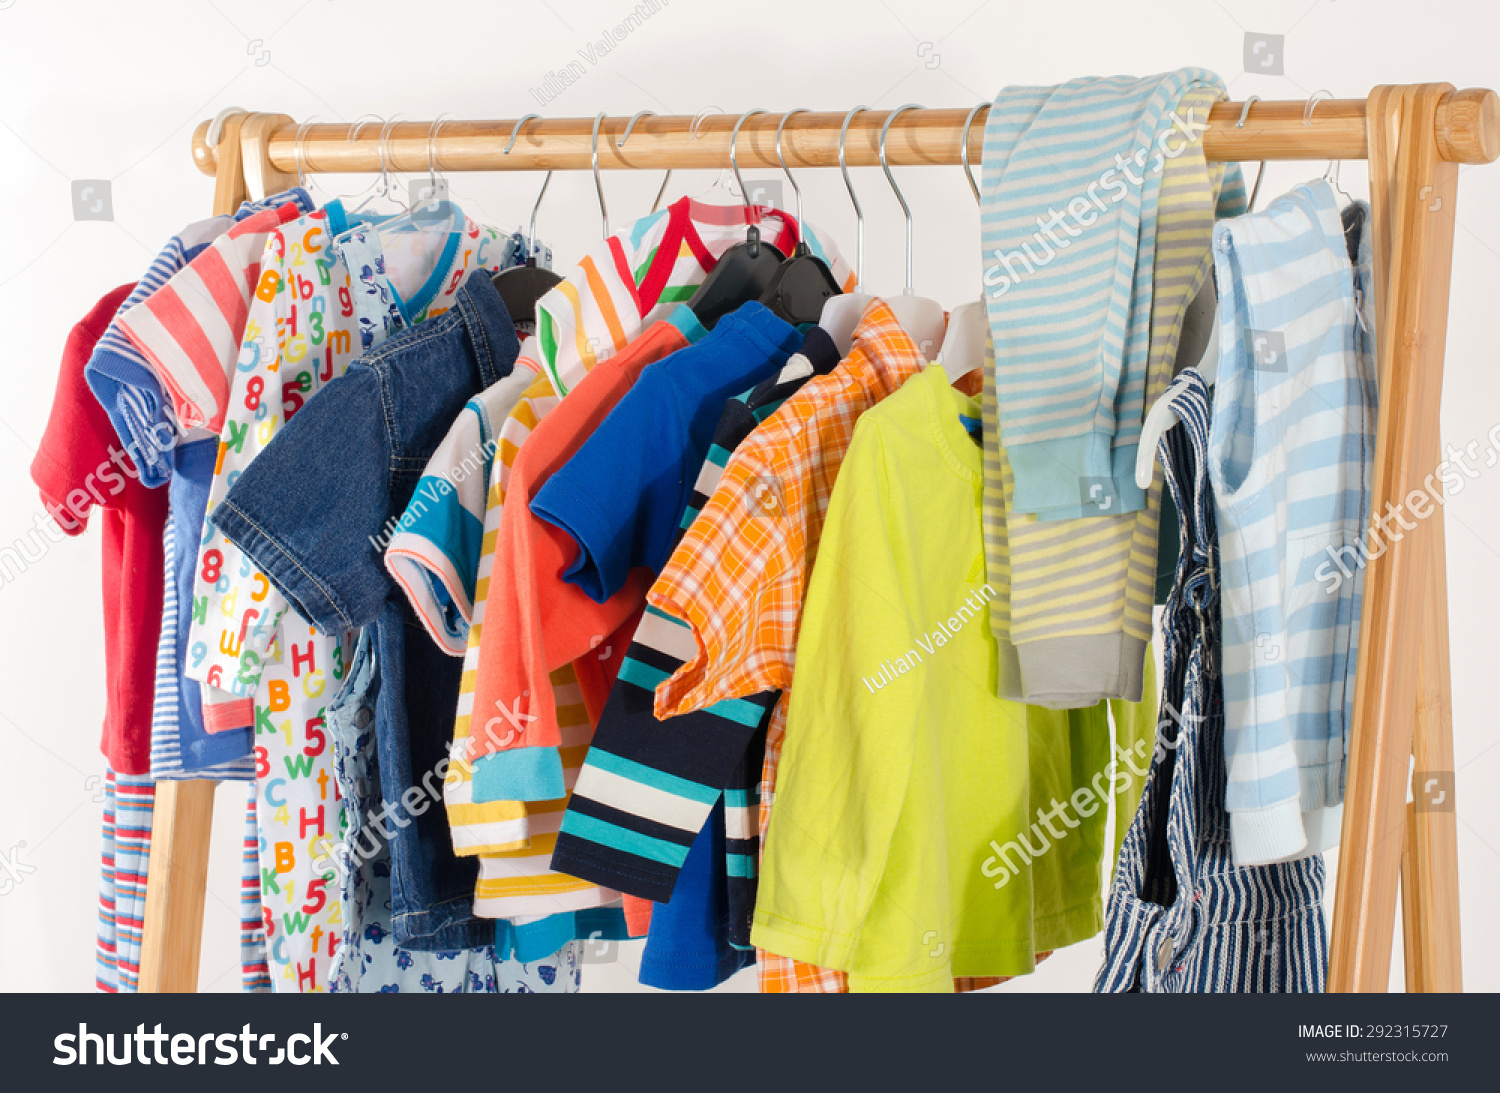 39a9e95eb Dressing Closet Clothes Arranged On Hangerscolorful Stock Photo ...